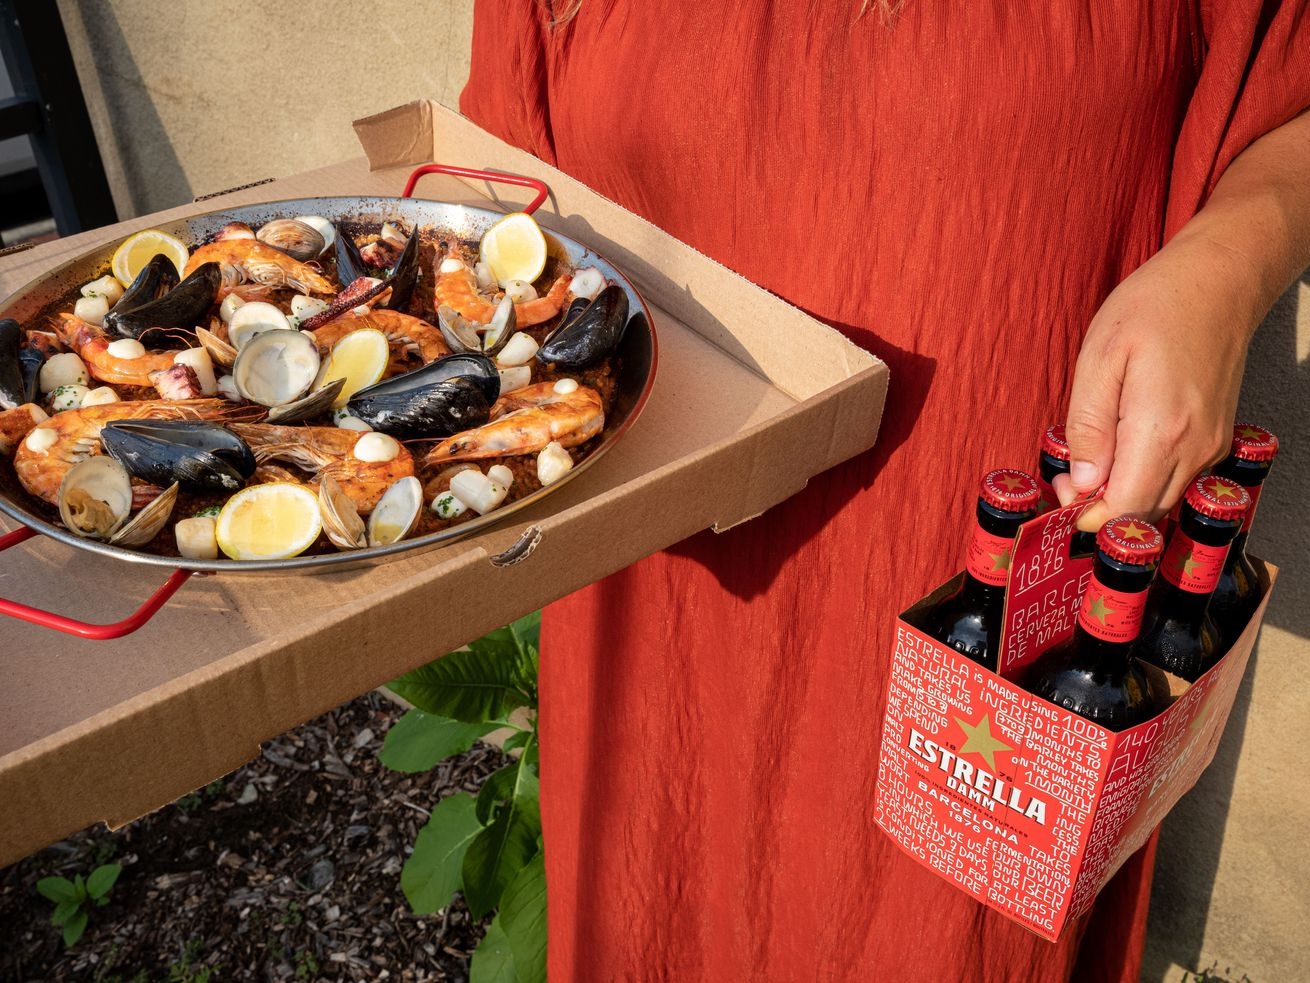 Paella in a pizza box